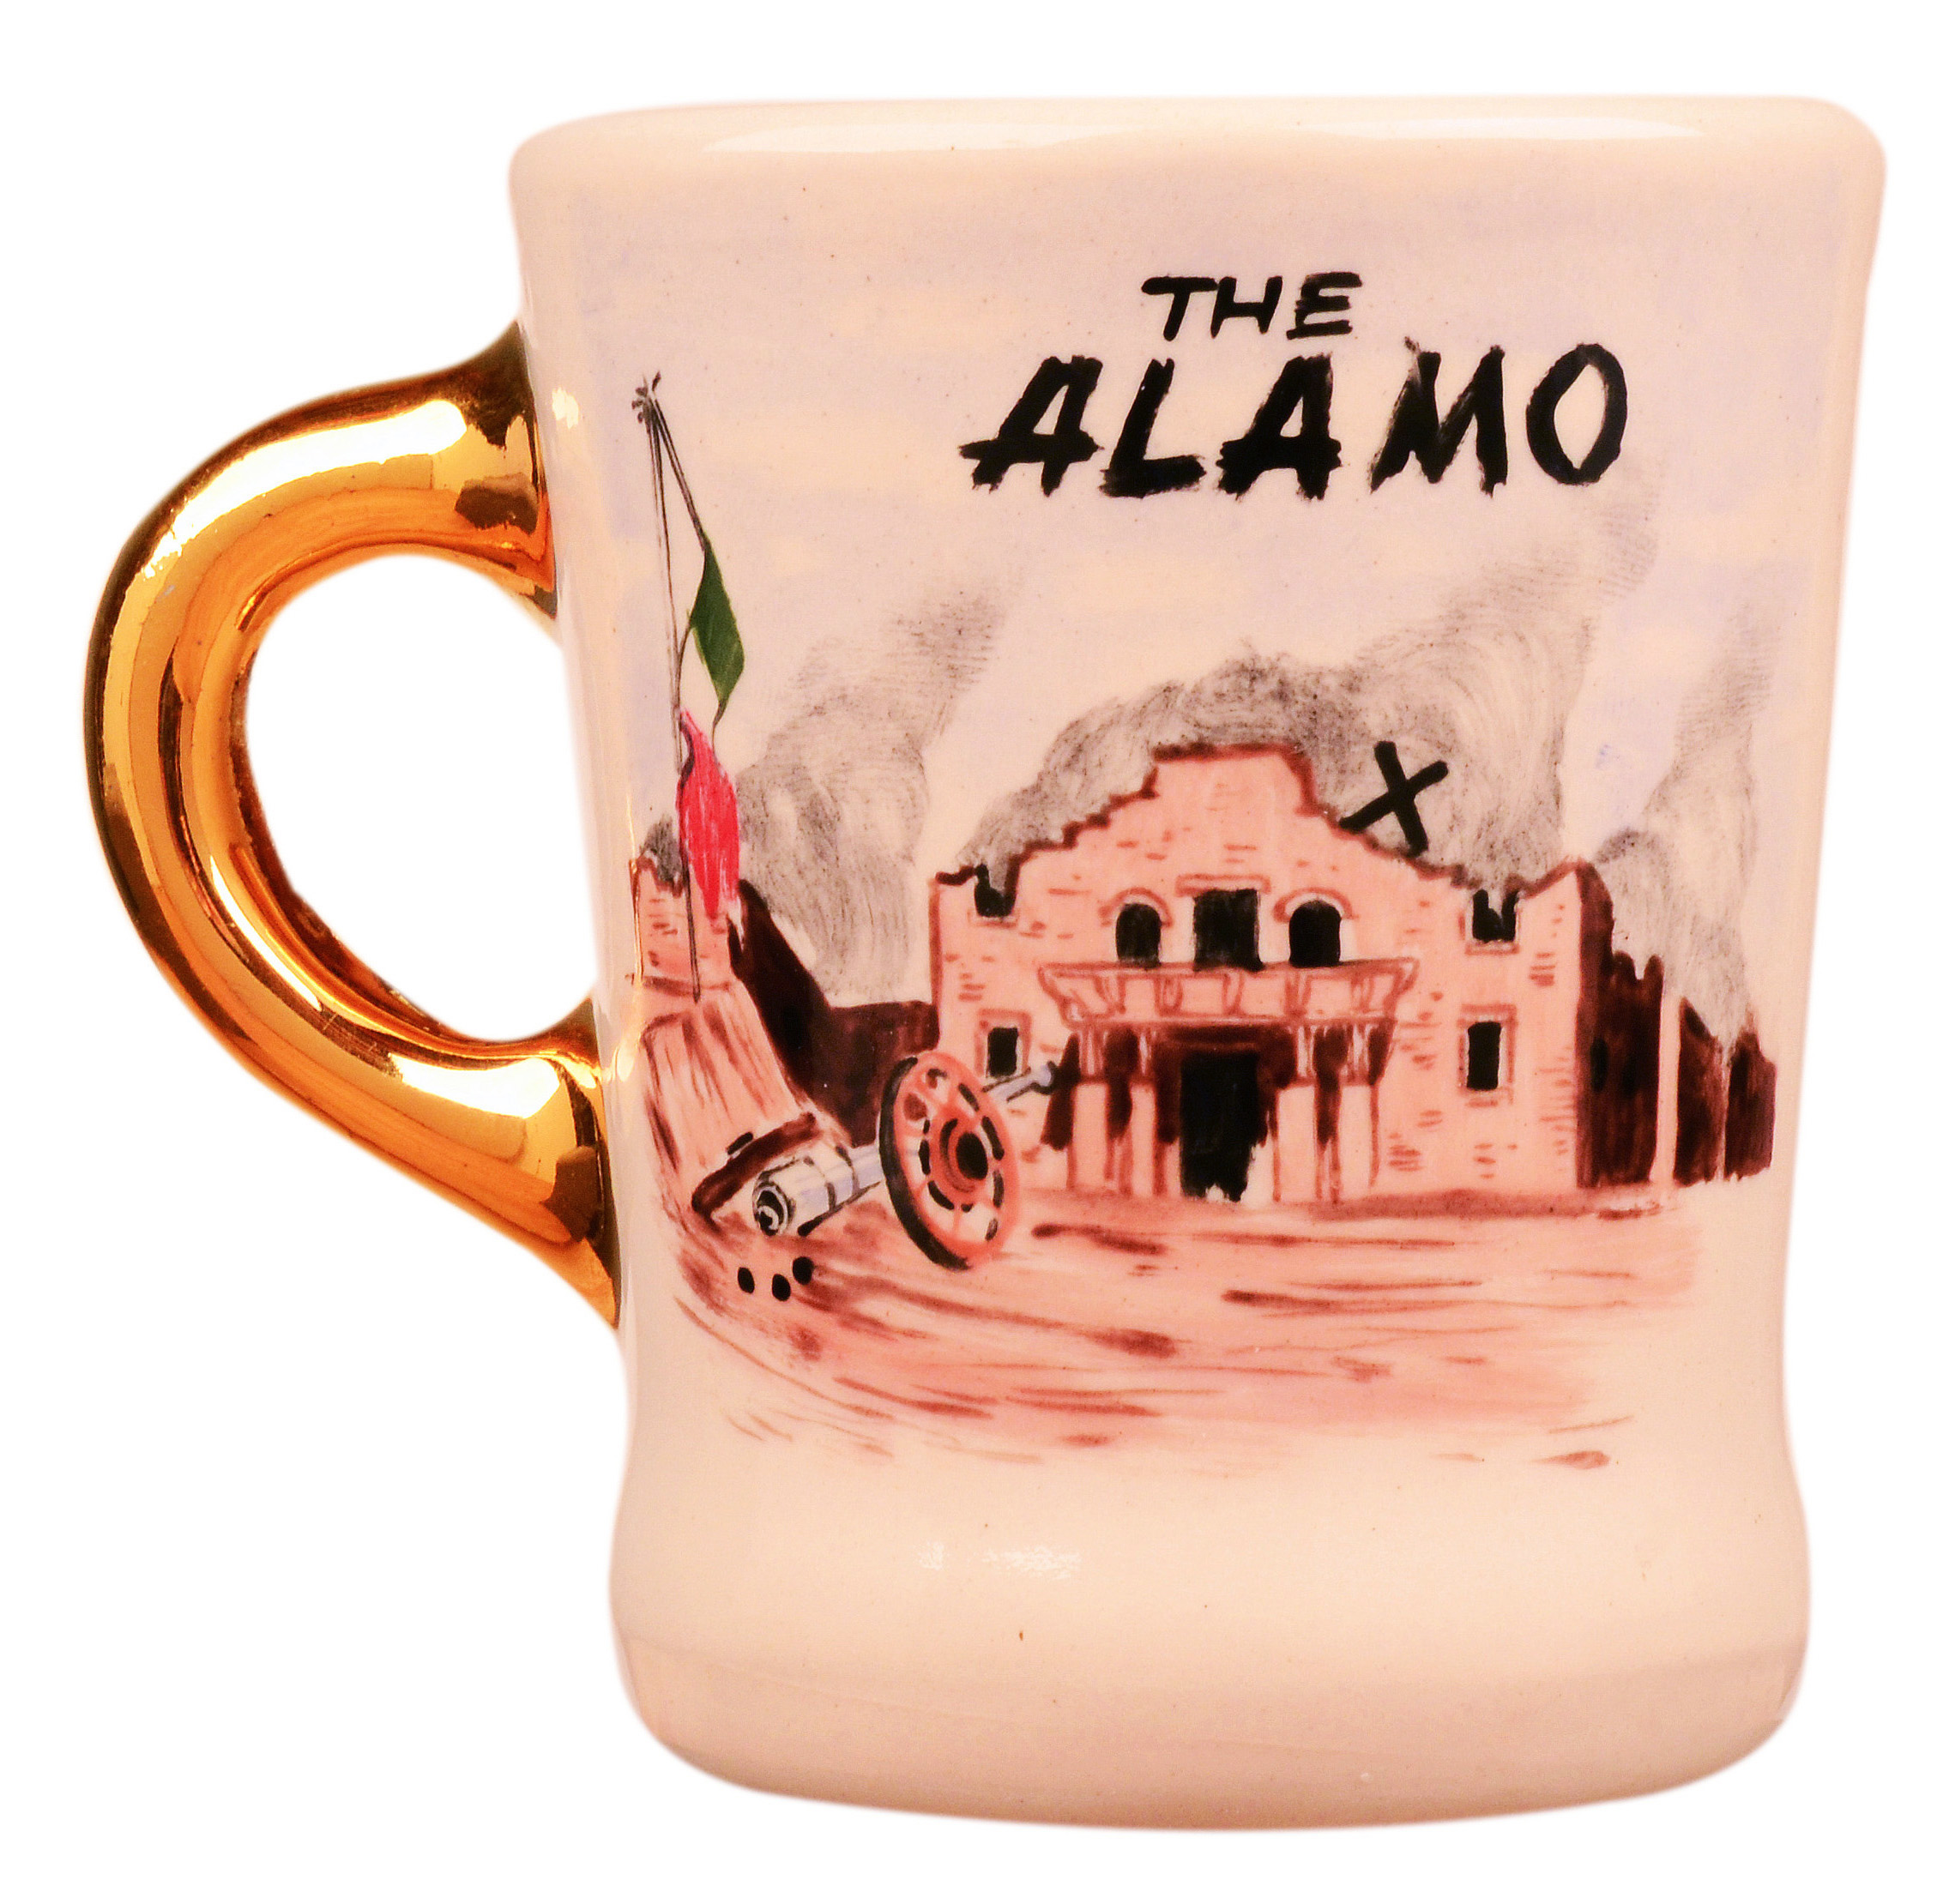 John Wayne mug for the 1960 movie The Alamo, front.